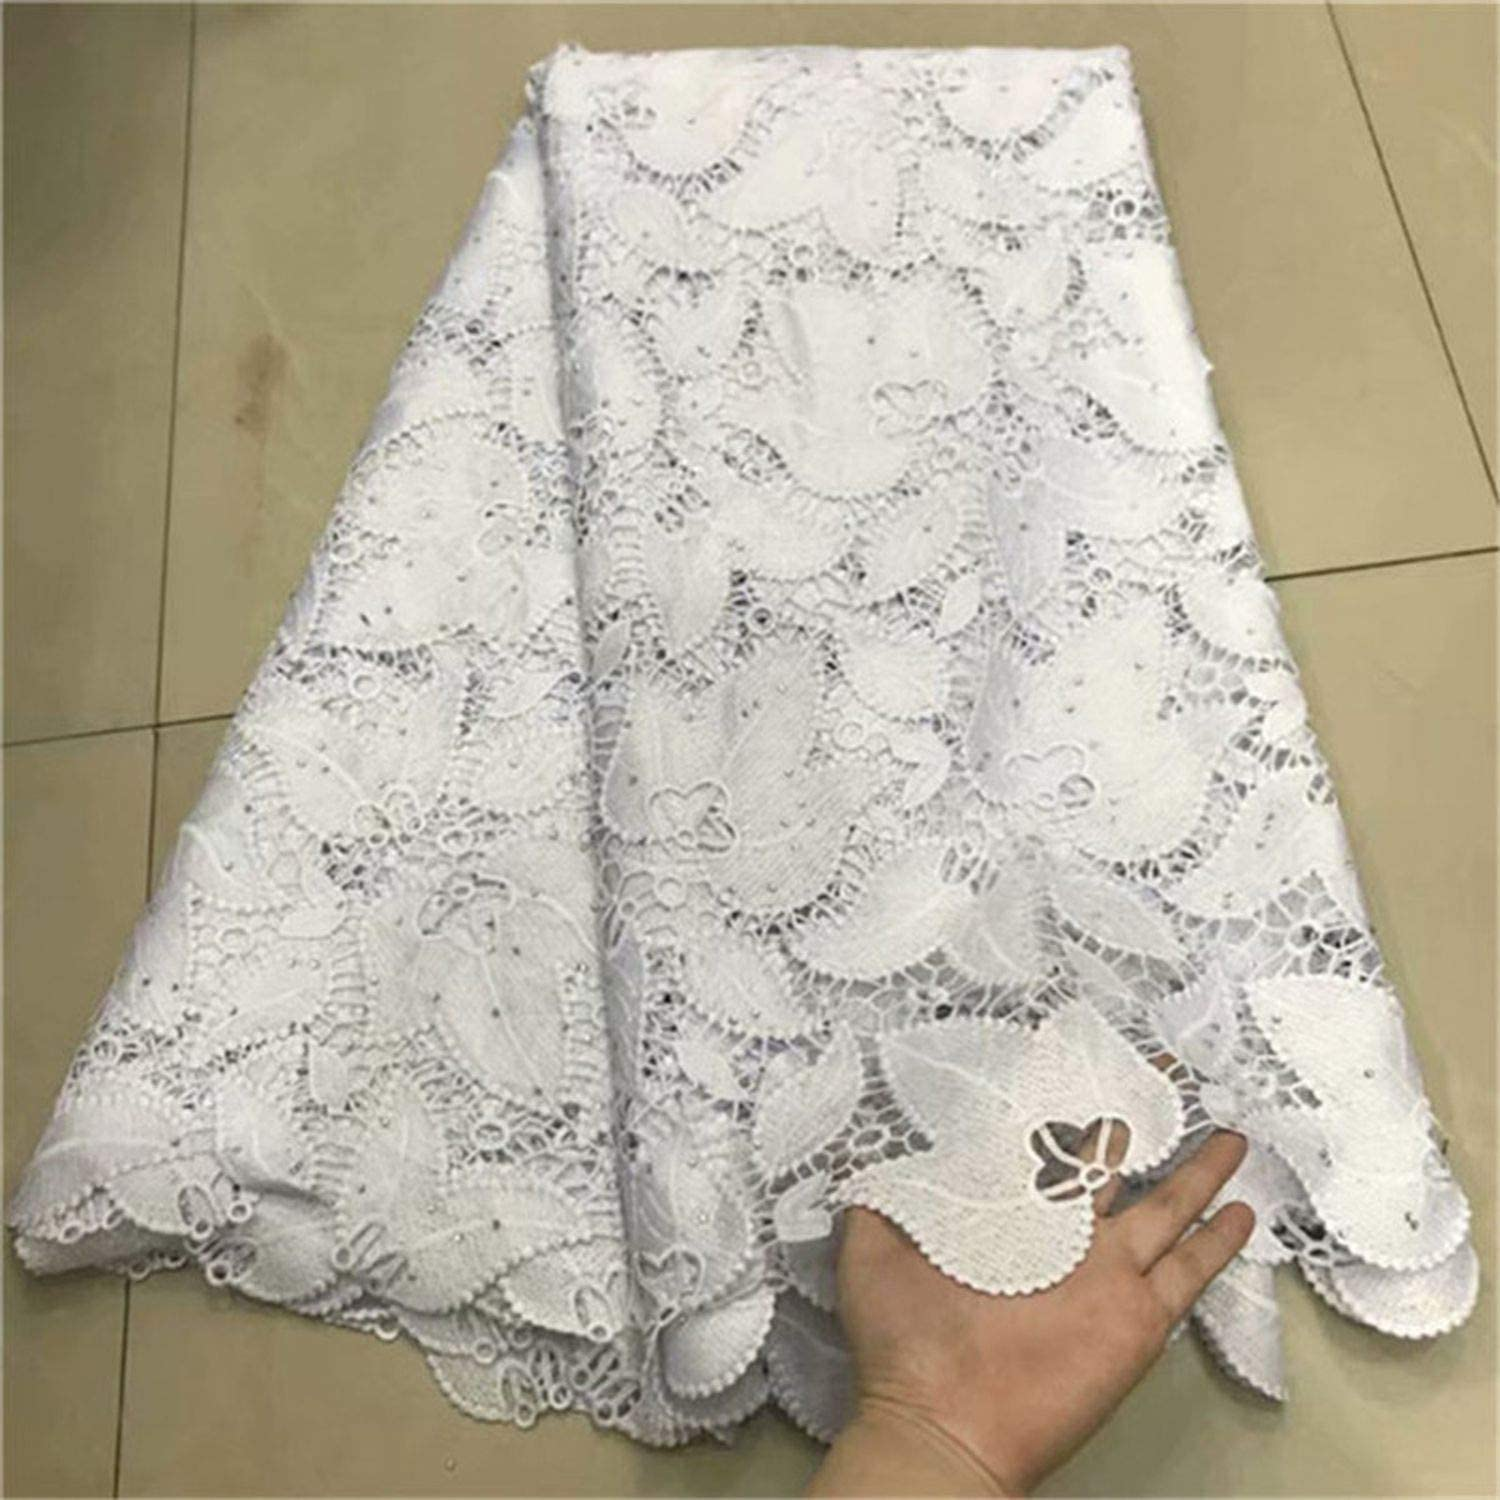 2019 Latest African Cord Lace Fabrics Nigerian Lace Fabric 2019 Lace Sky Blue French Lace Fabric for Wedding,As Shown 5